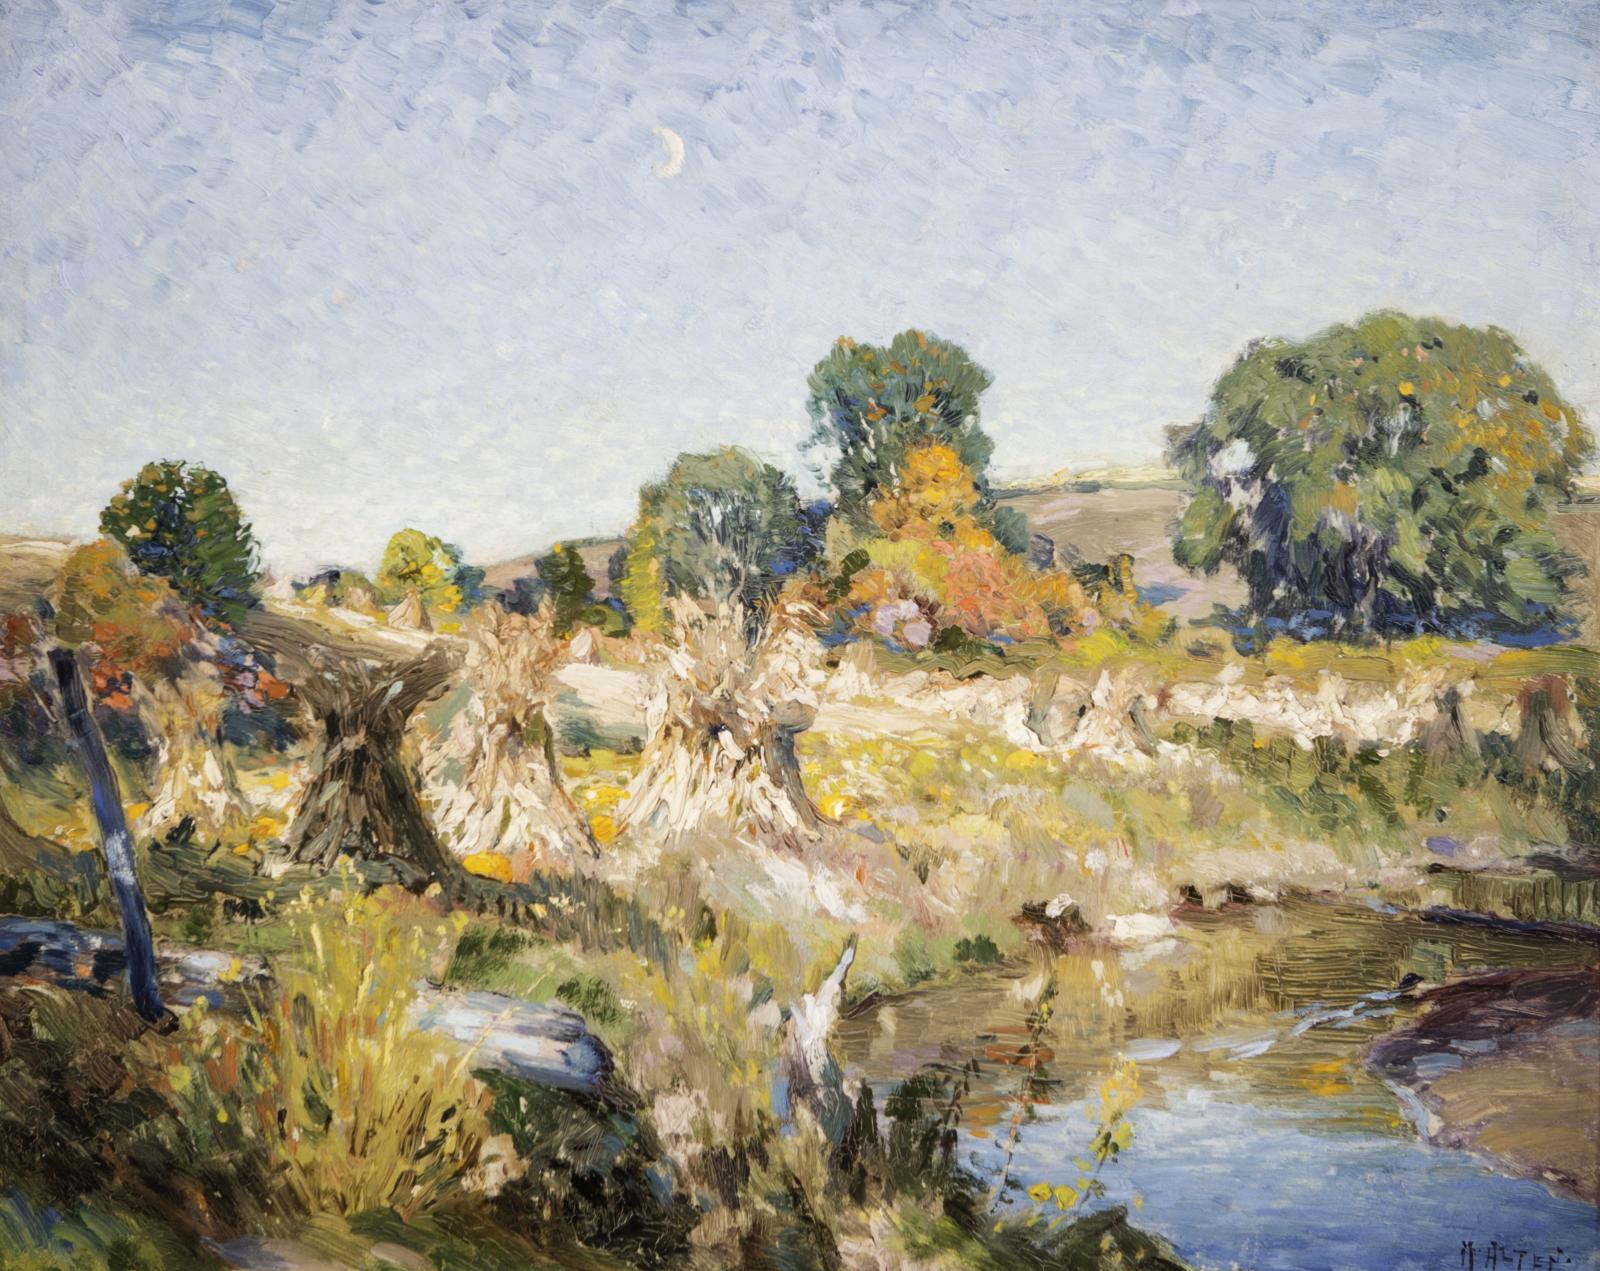 Landscape with a small stream bottom right, trees and corn shocks along the bank.